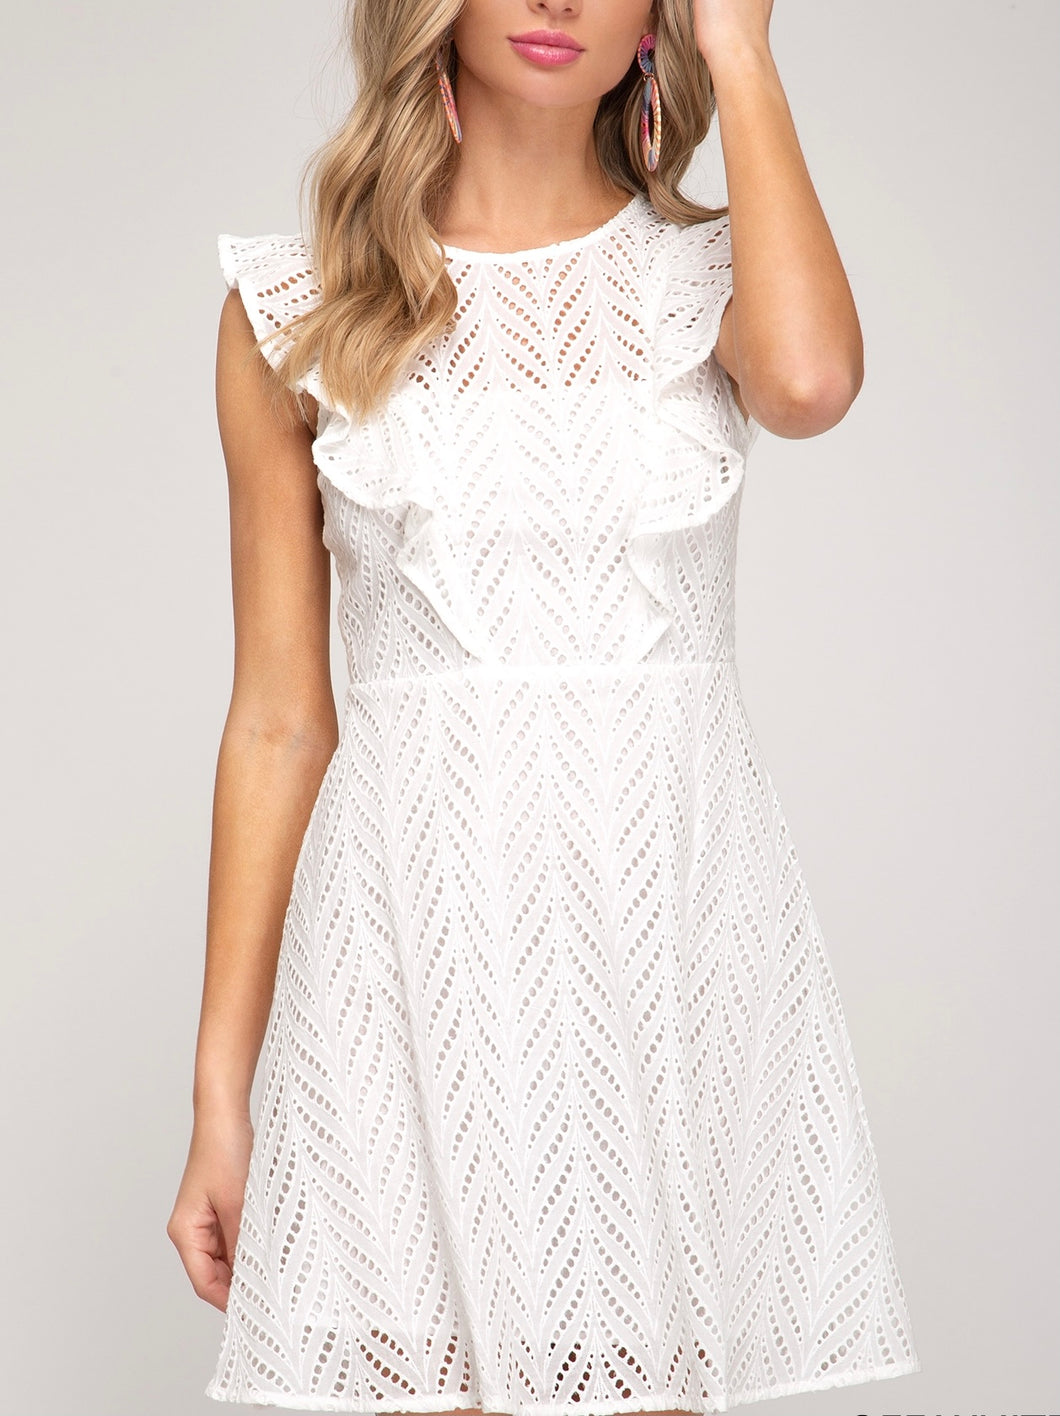 Great Eyelet Short Dress